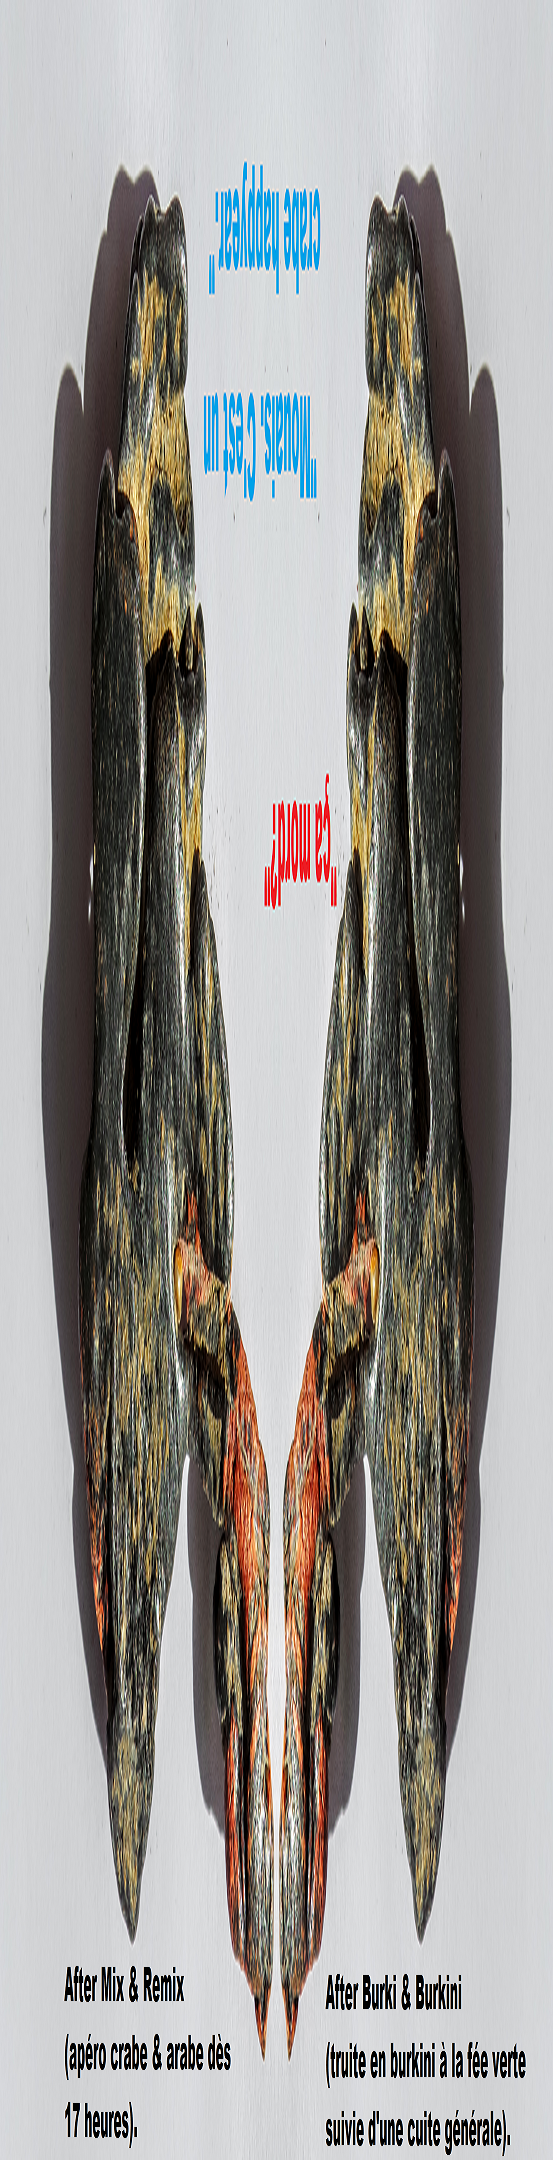 2016-09-29 11.00.43333.png